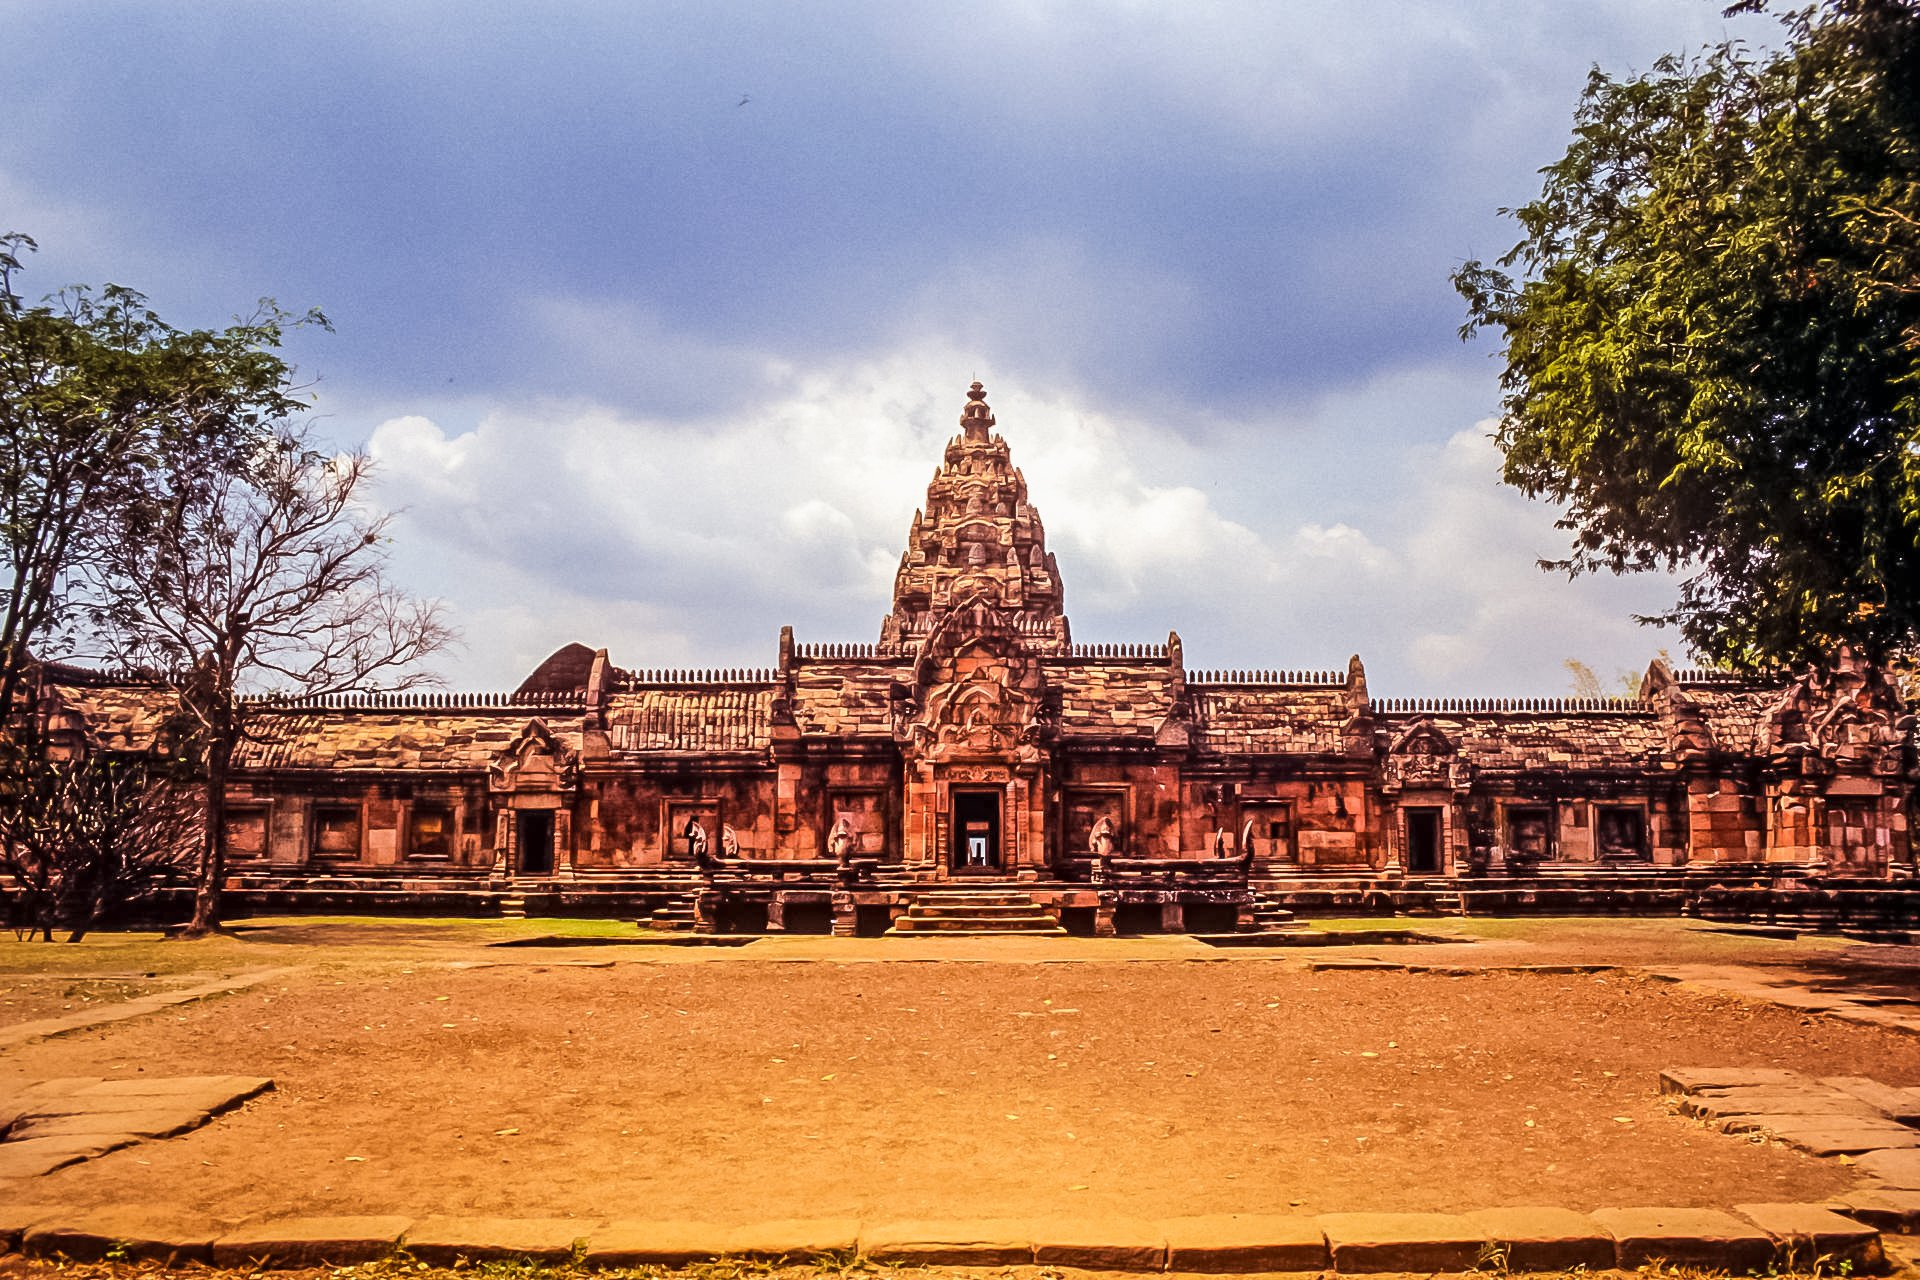 Prasat Hin is ancient temple located in Phanom Rung Historical Park Thailand.